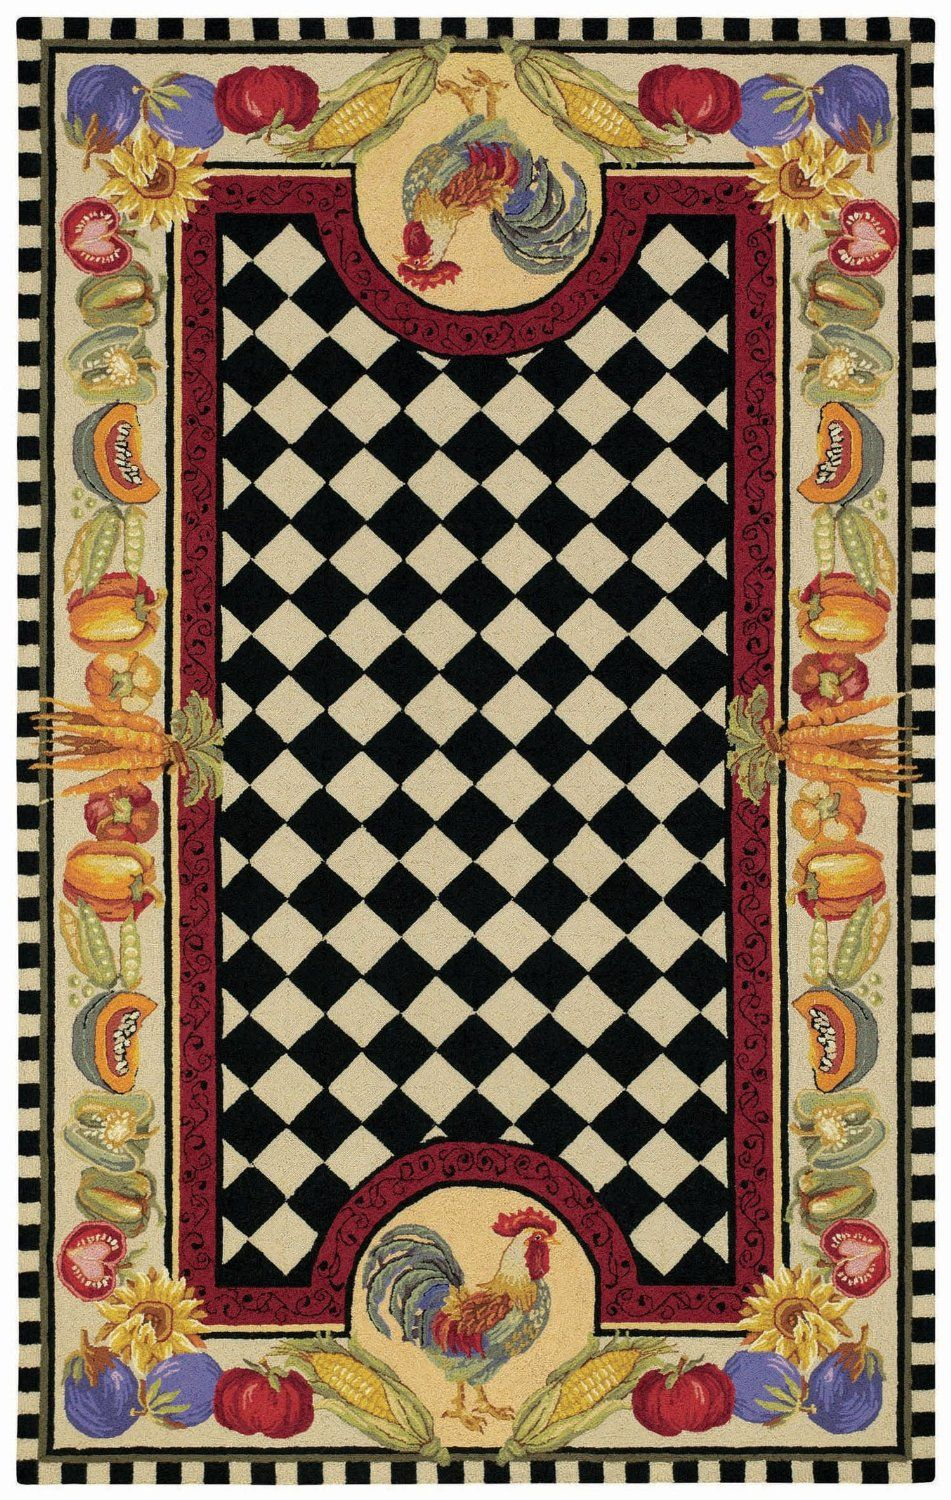 Contemporary Hand Made Novelty Rug With Black And White Checkered Center  And Two Roosters, Fruits